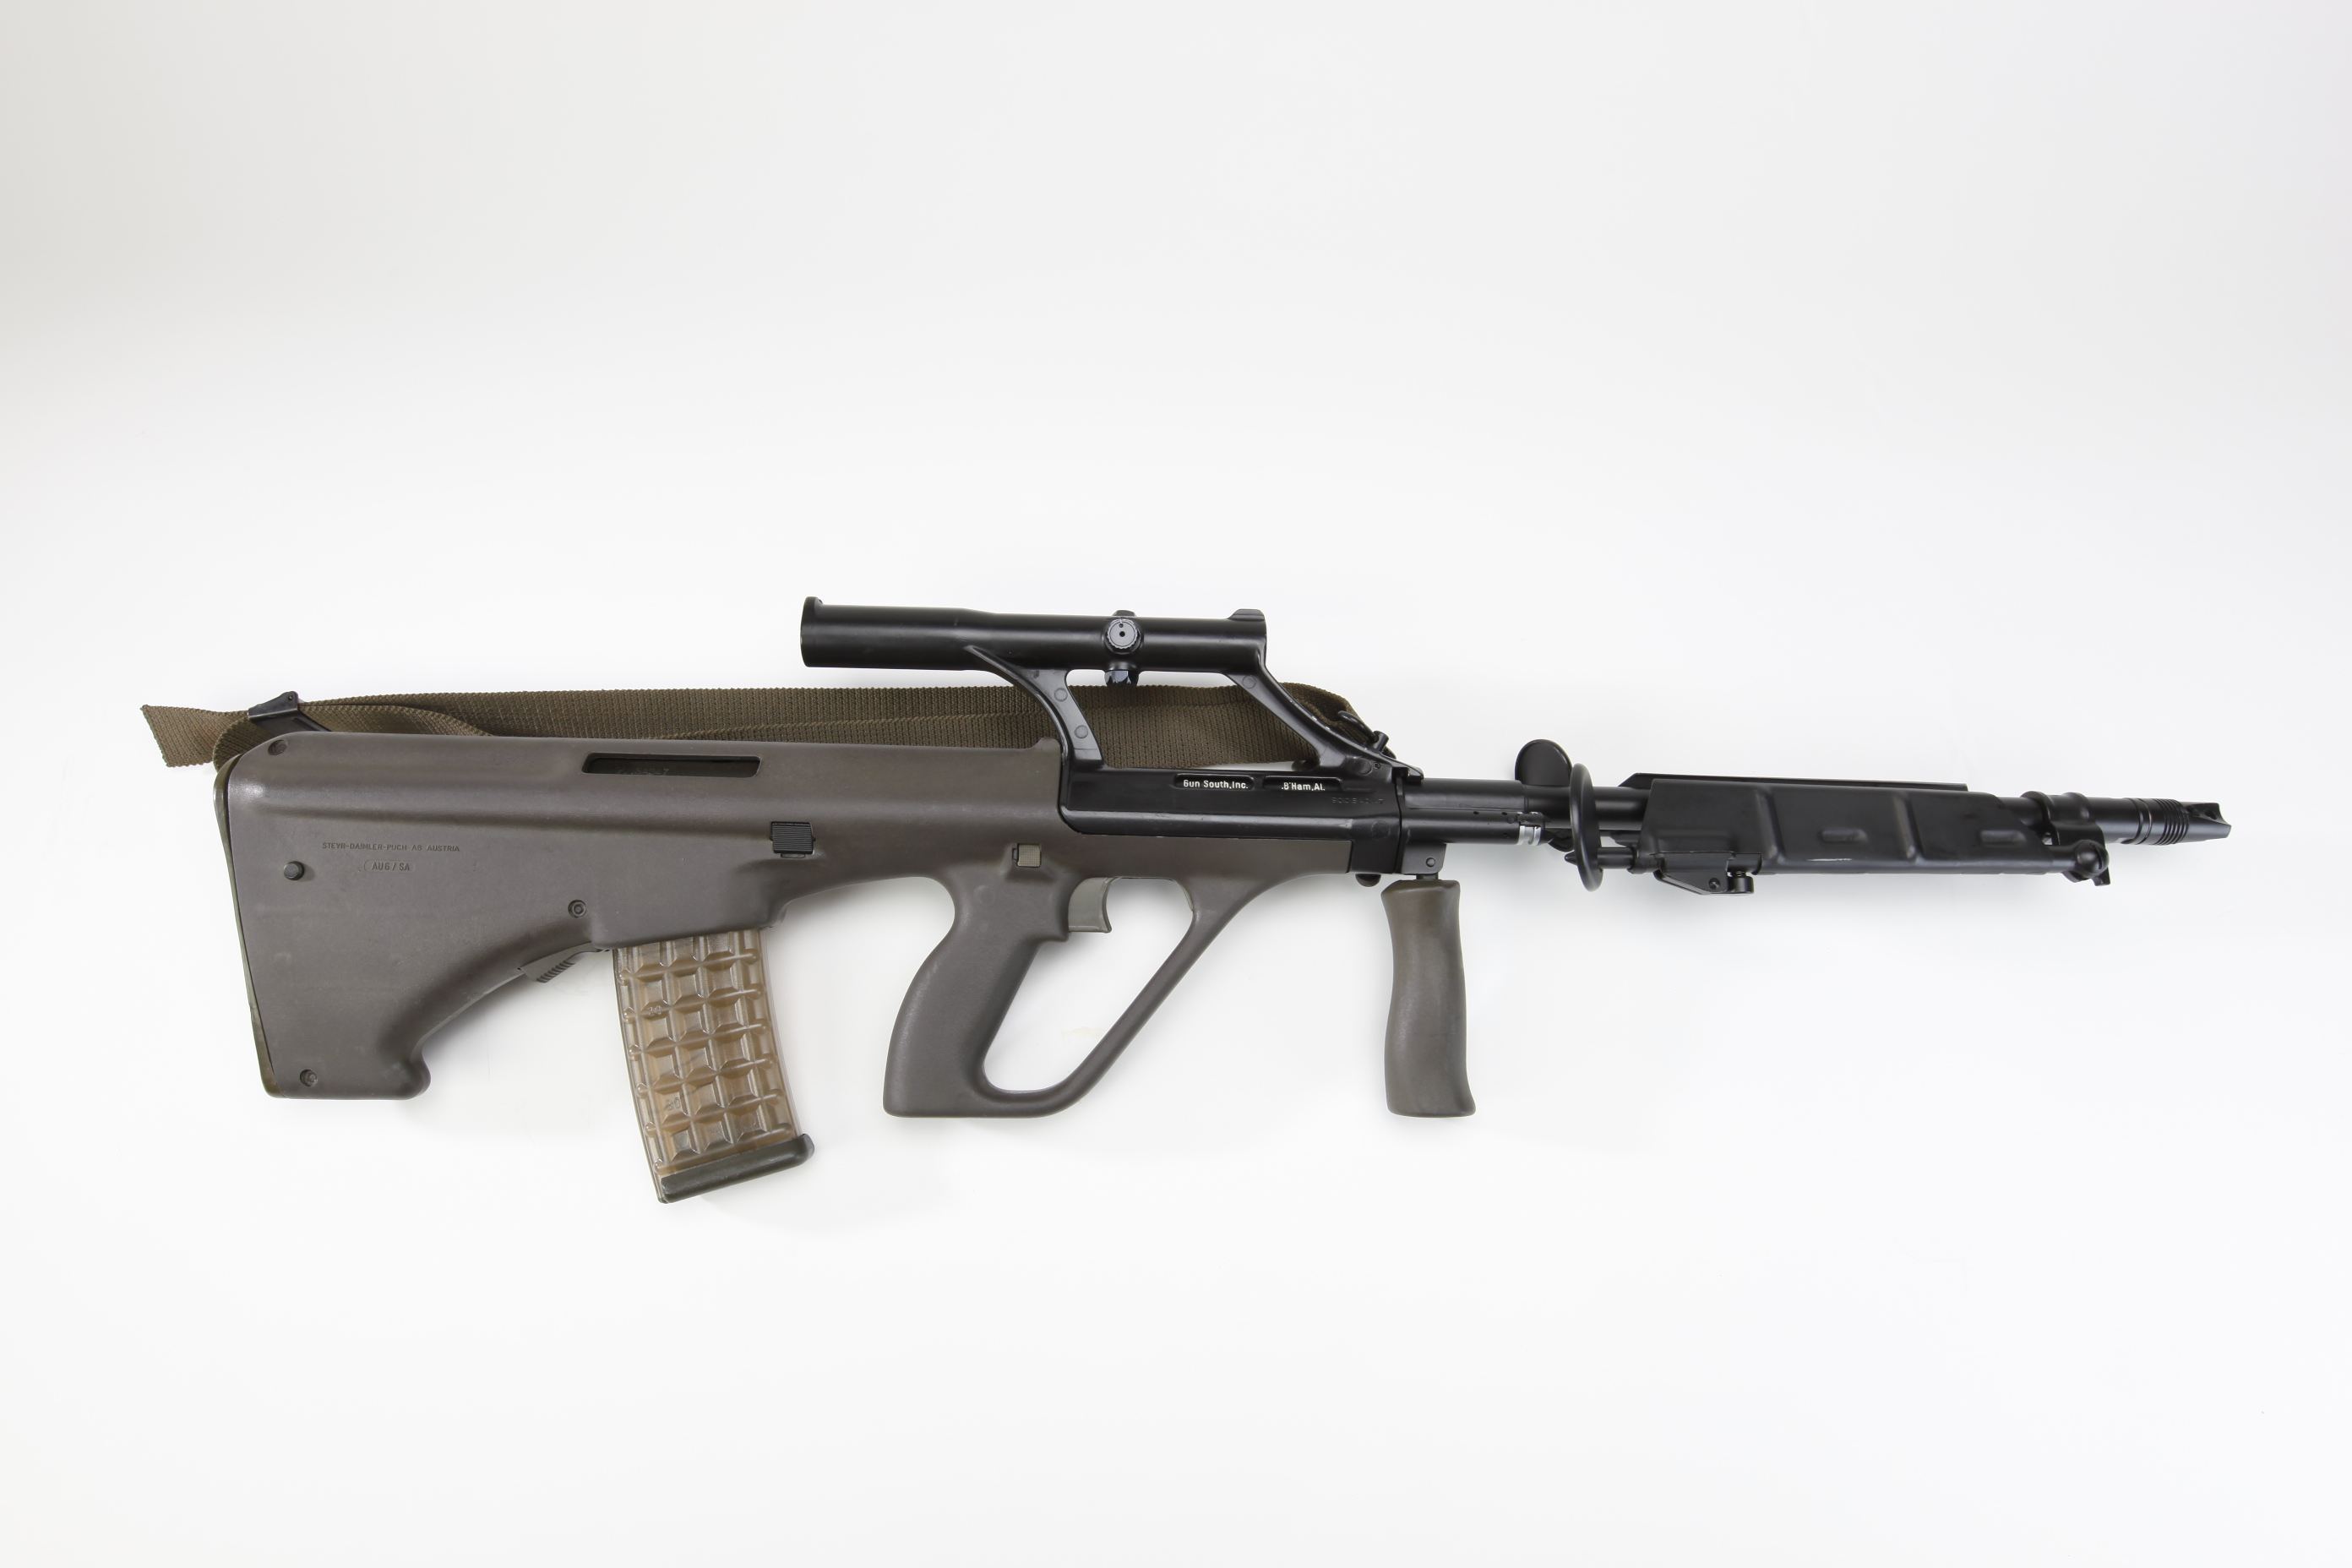 Steyr AUG rifle